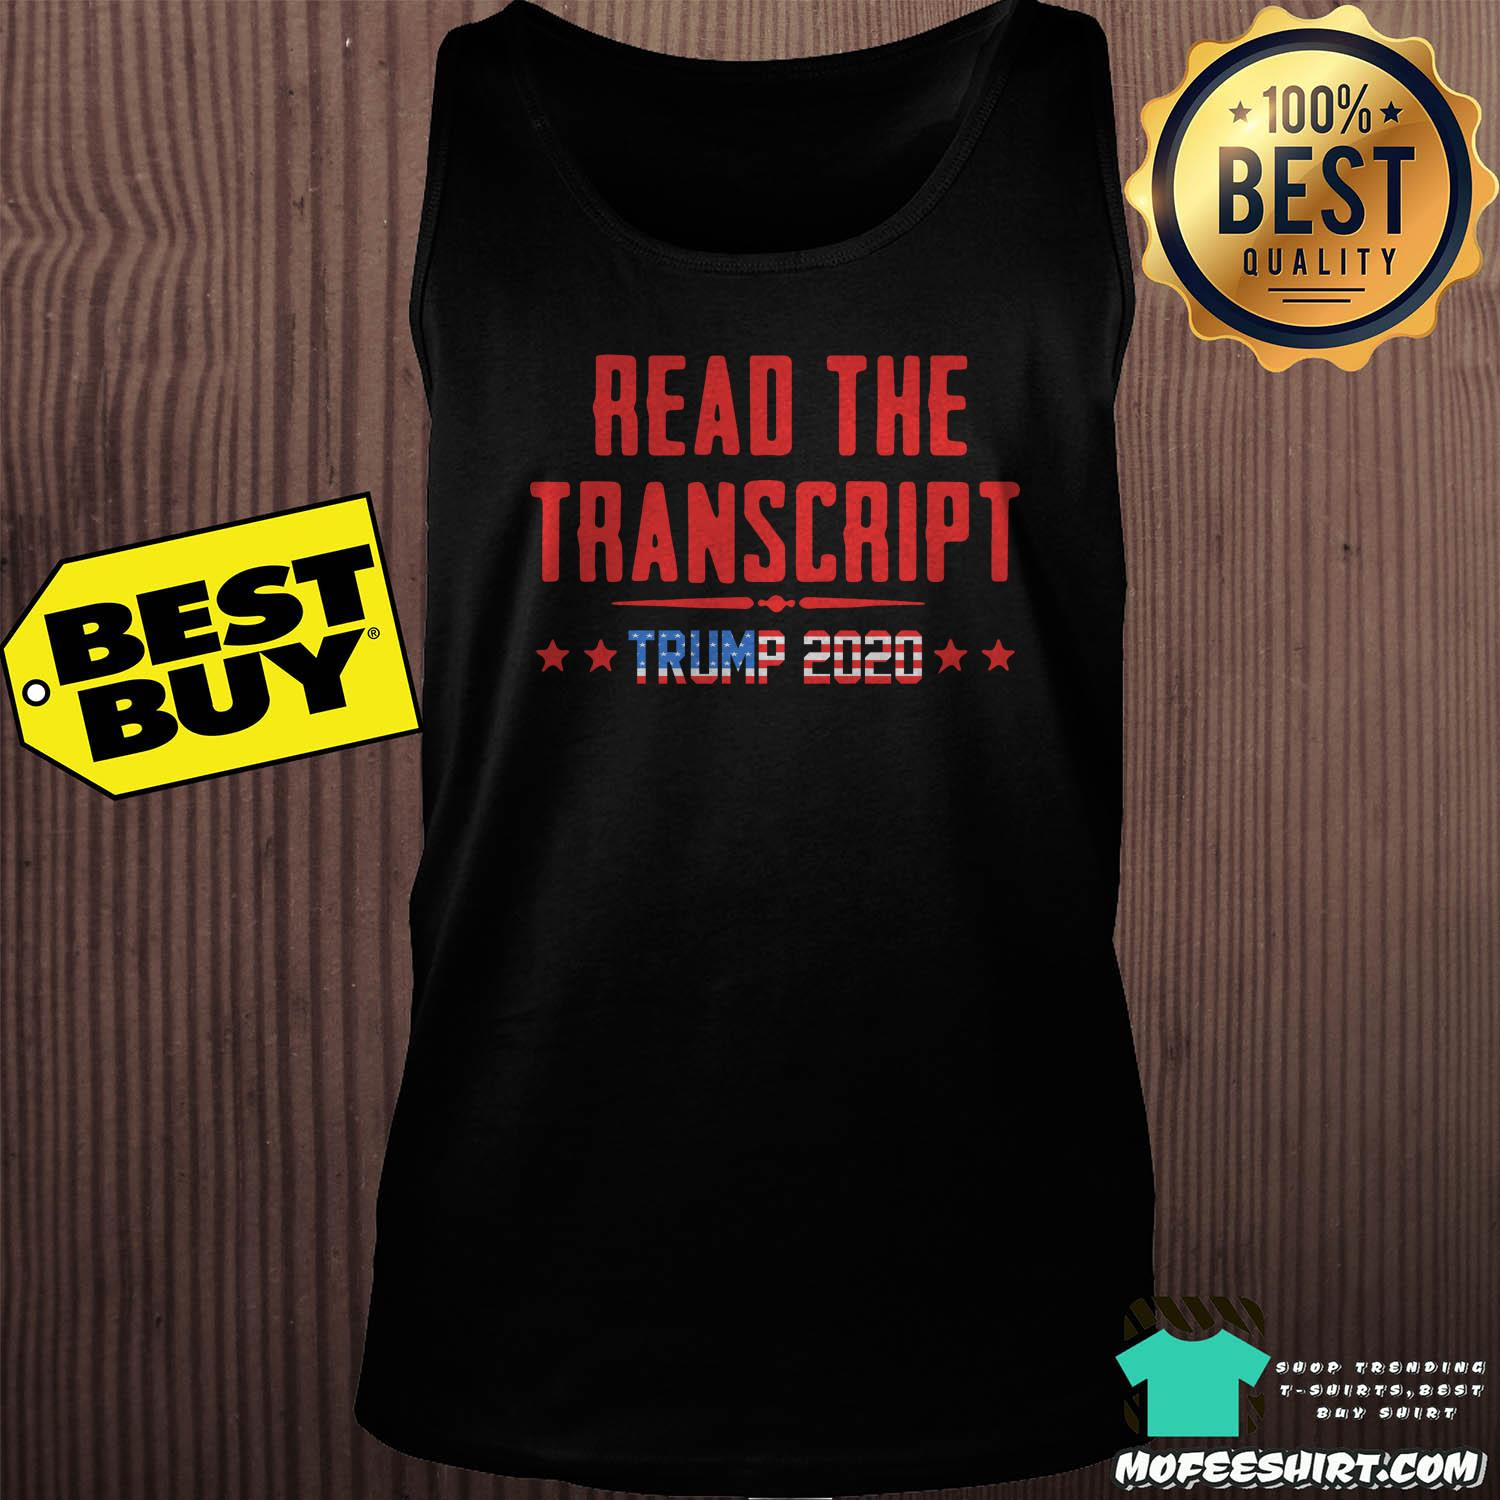 read the transcript trump impeachment day tank top sweater - Read The Transcript Trump Impeachment Day Shirt Sweater